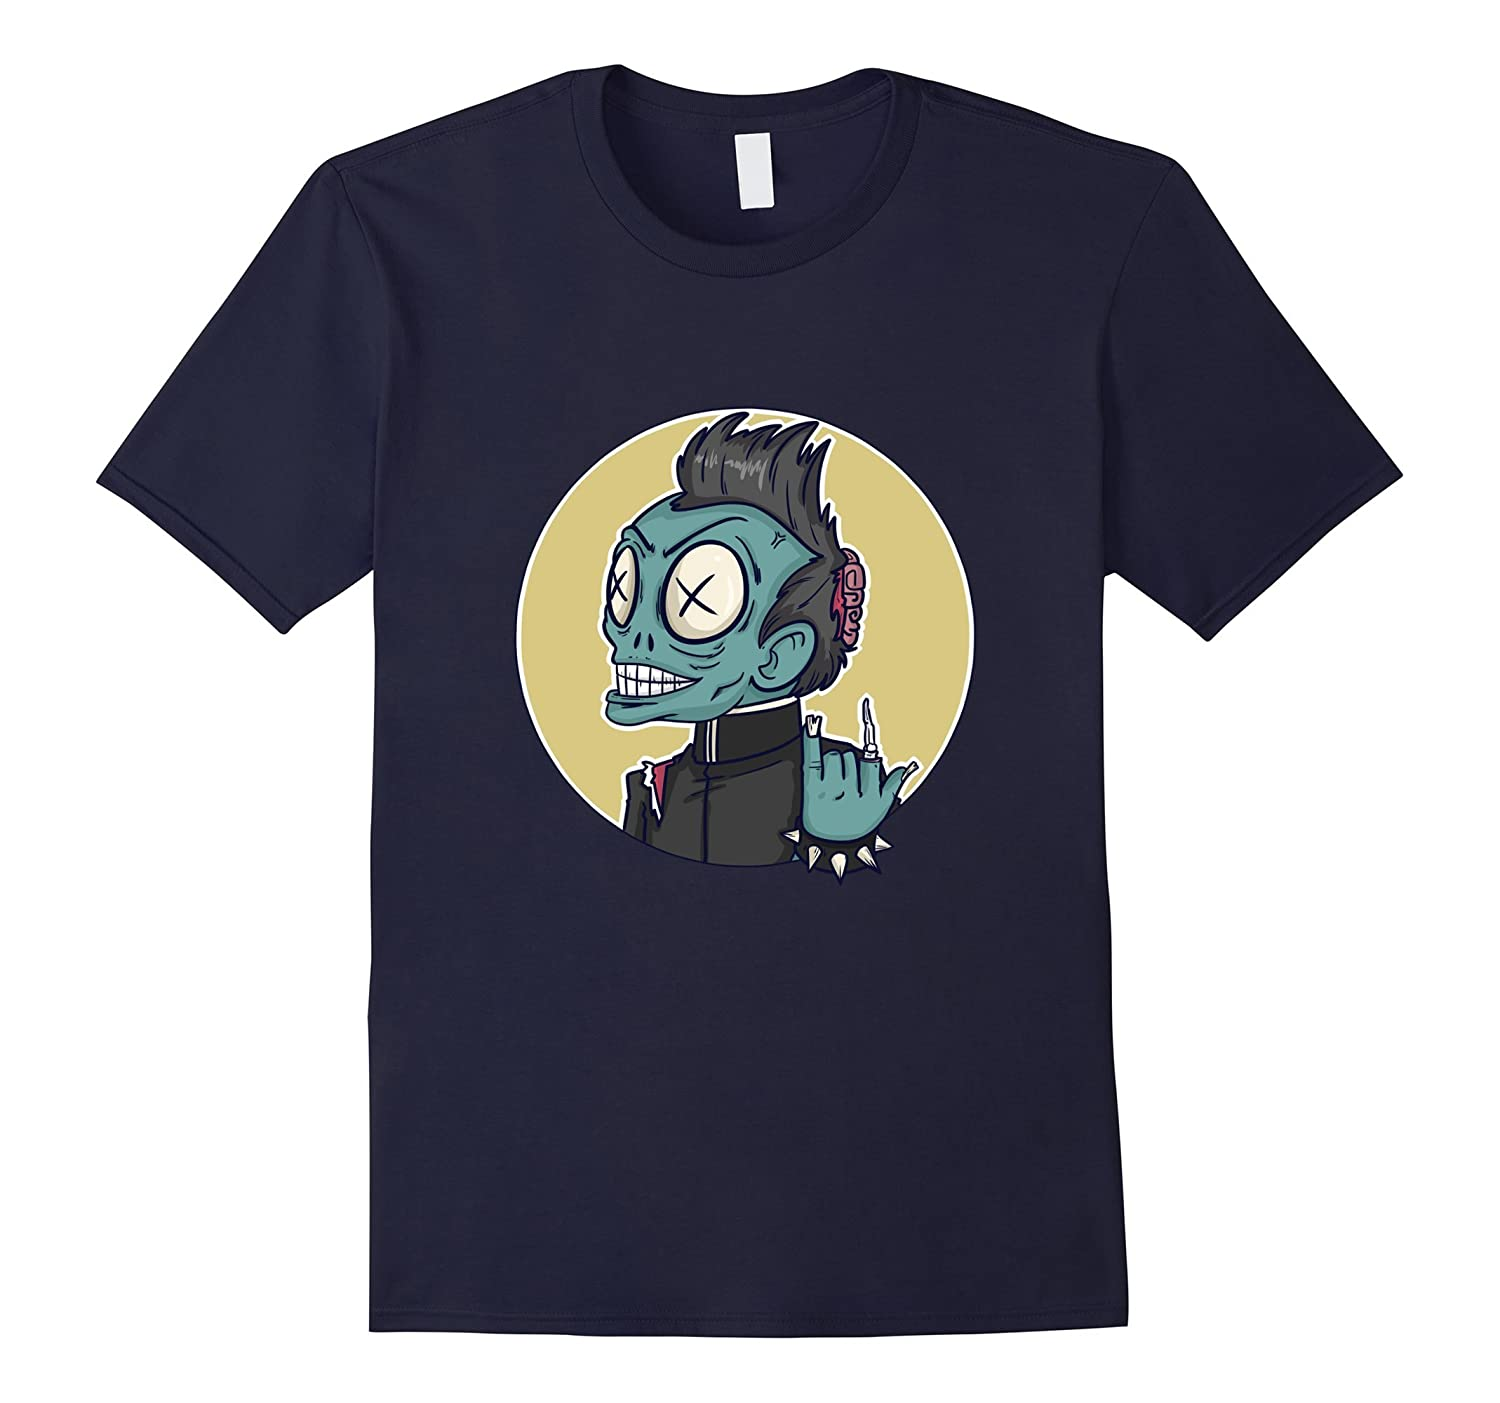 Back to School Shirts - Funny Halloween Zombie Tee-CL